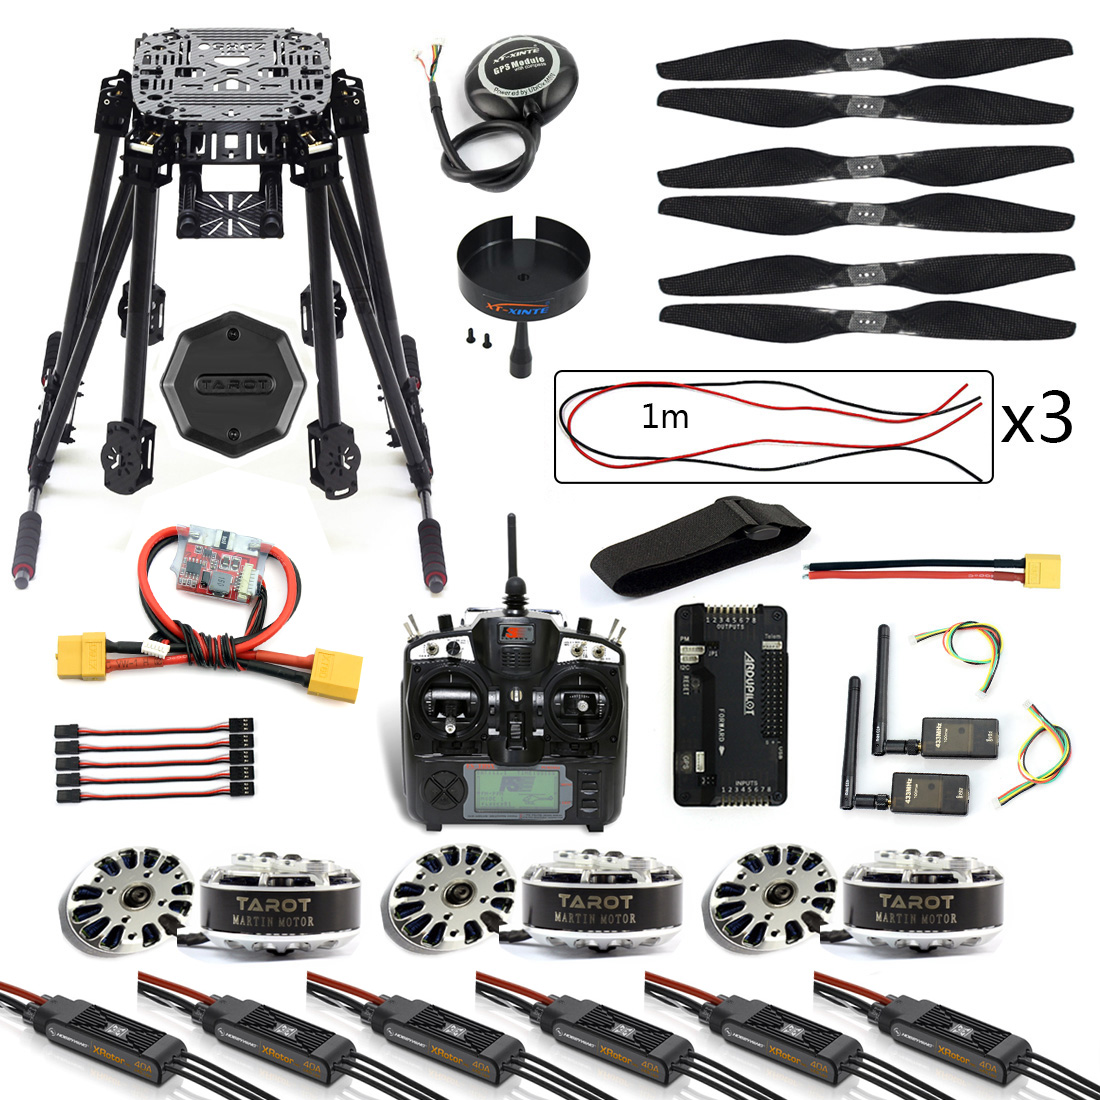 DIY 6-Axle ZD850 Frame Kit APM 2.8 Flight Controller M8N GPS 3DR MHz Telemetry Flysky TH9X TX Motor ESC RC Hexacopter F19833-C 3dr power module apm2 2 5 apm flight controller ardupilot mega apm2 6 f